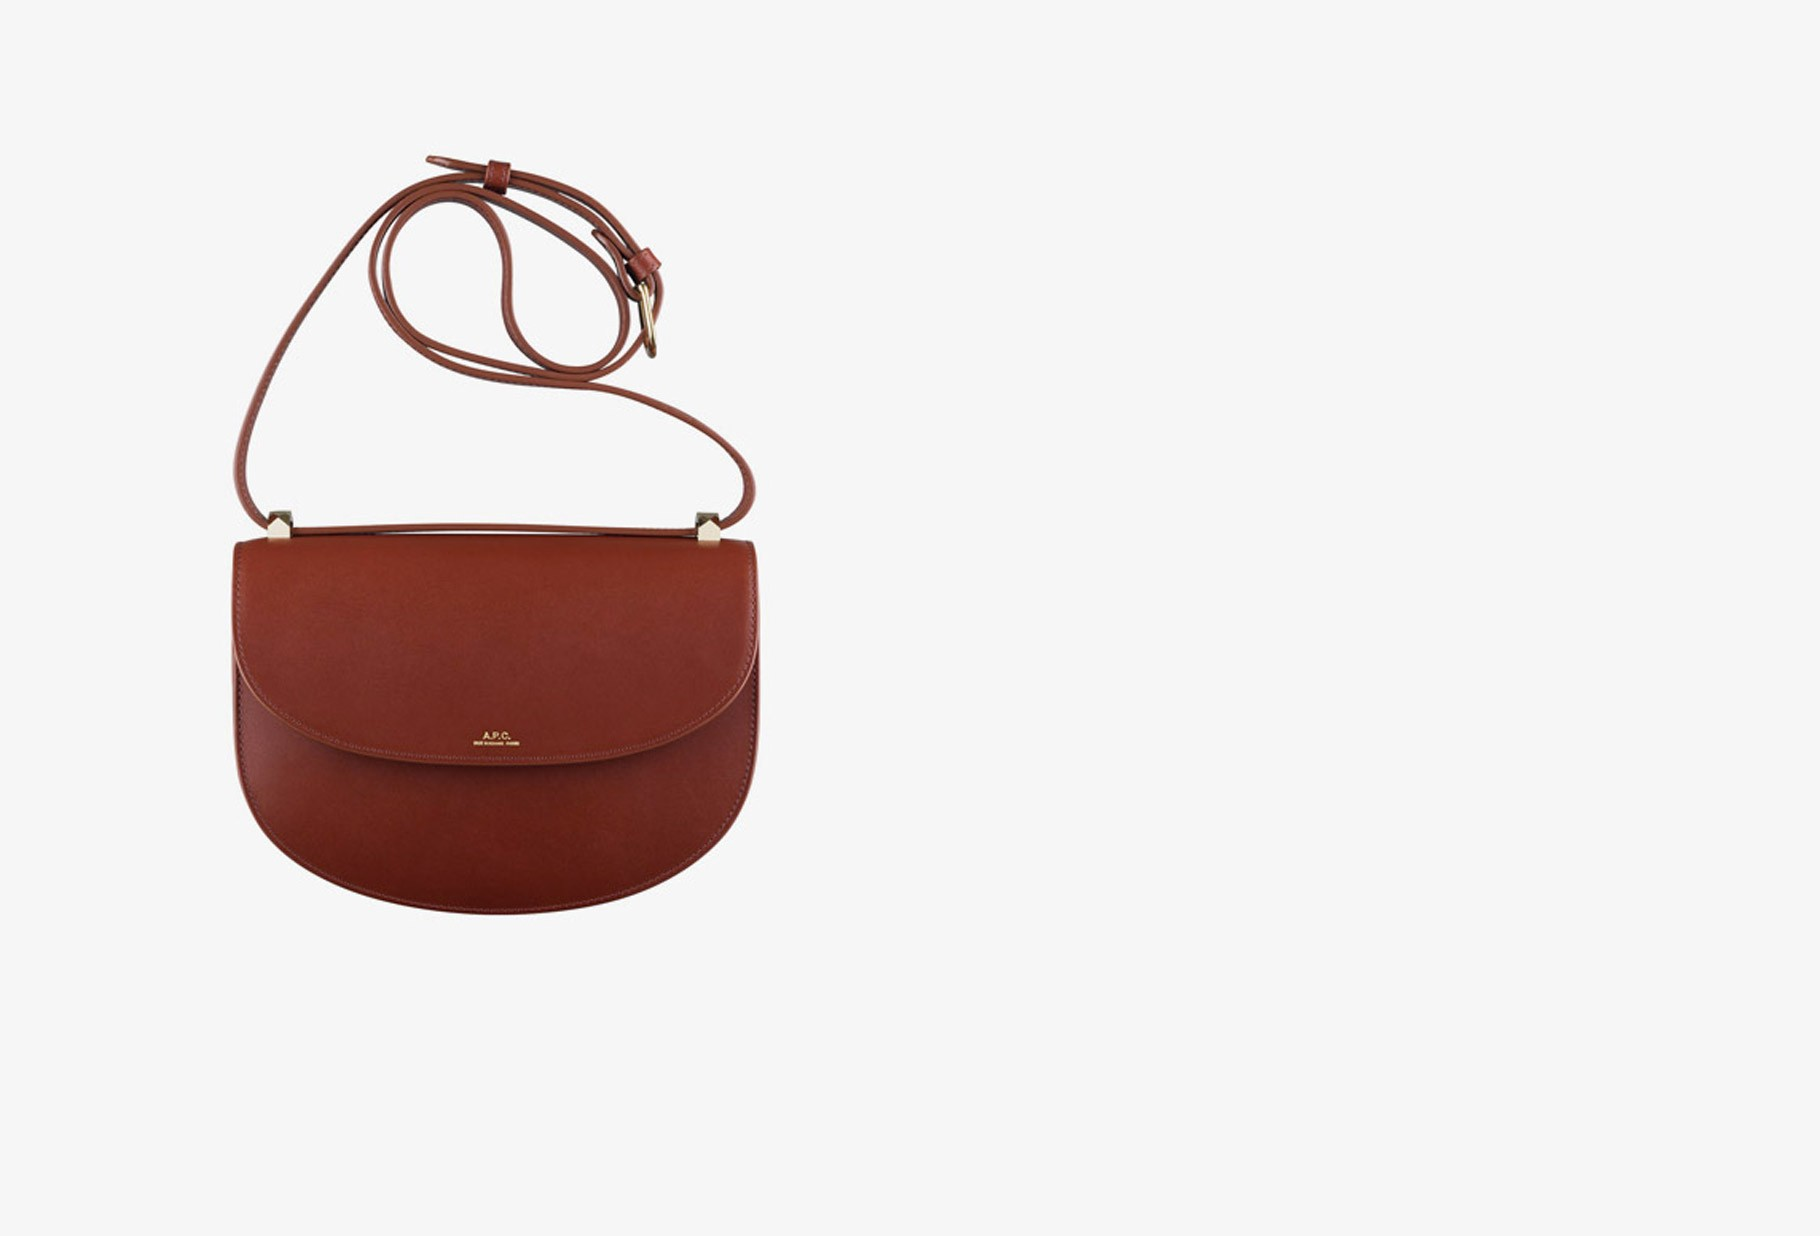 A.P.C. FOR WOMAN / Sac geneve Terracotta